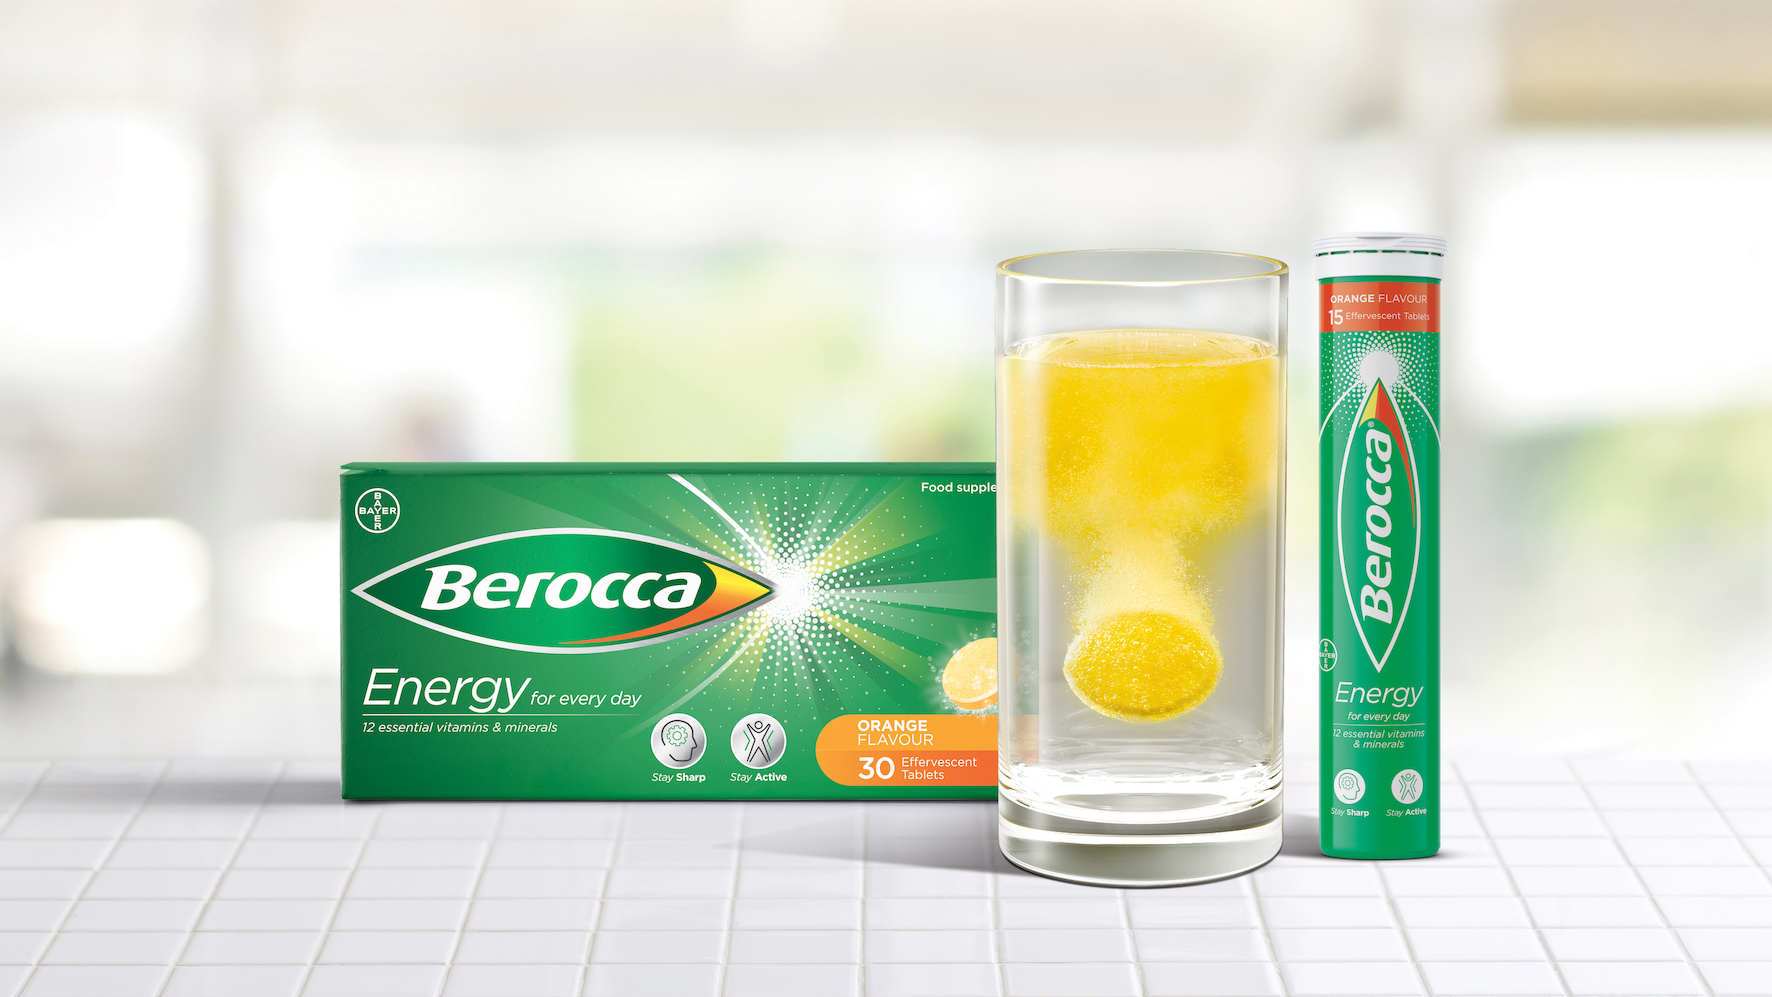 Free The Birds Refreshes Berocca's Identity to Spark Positivity